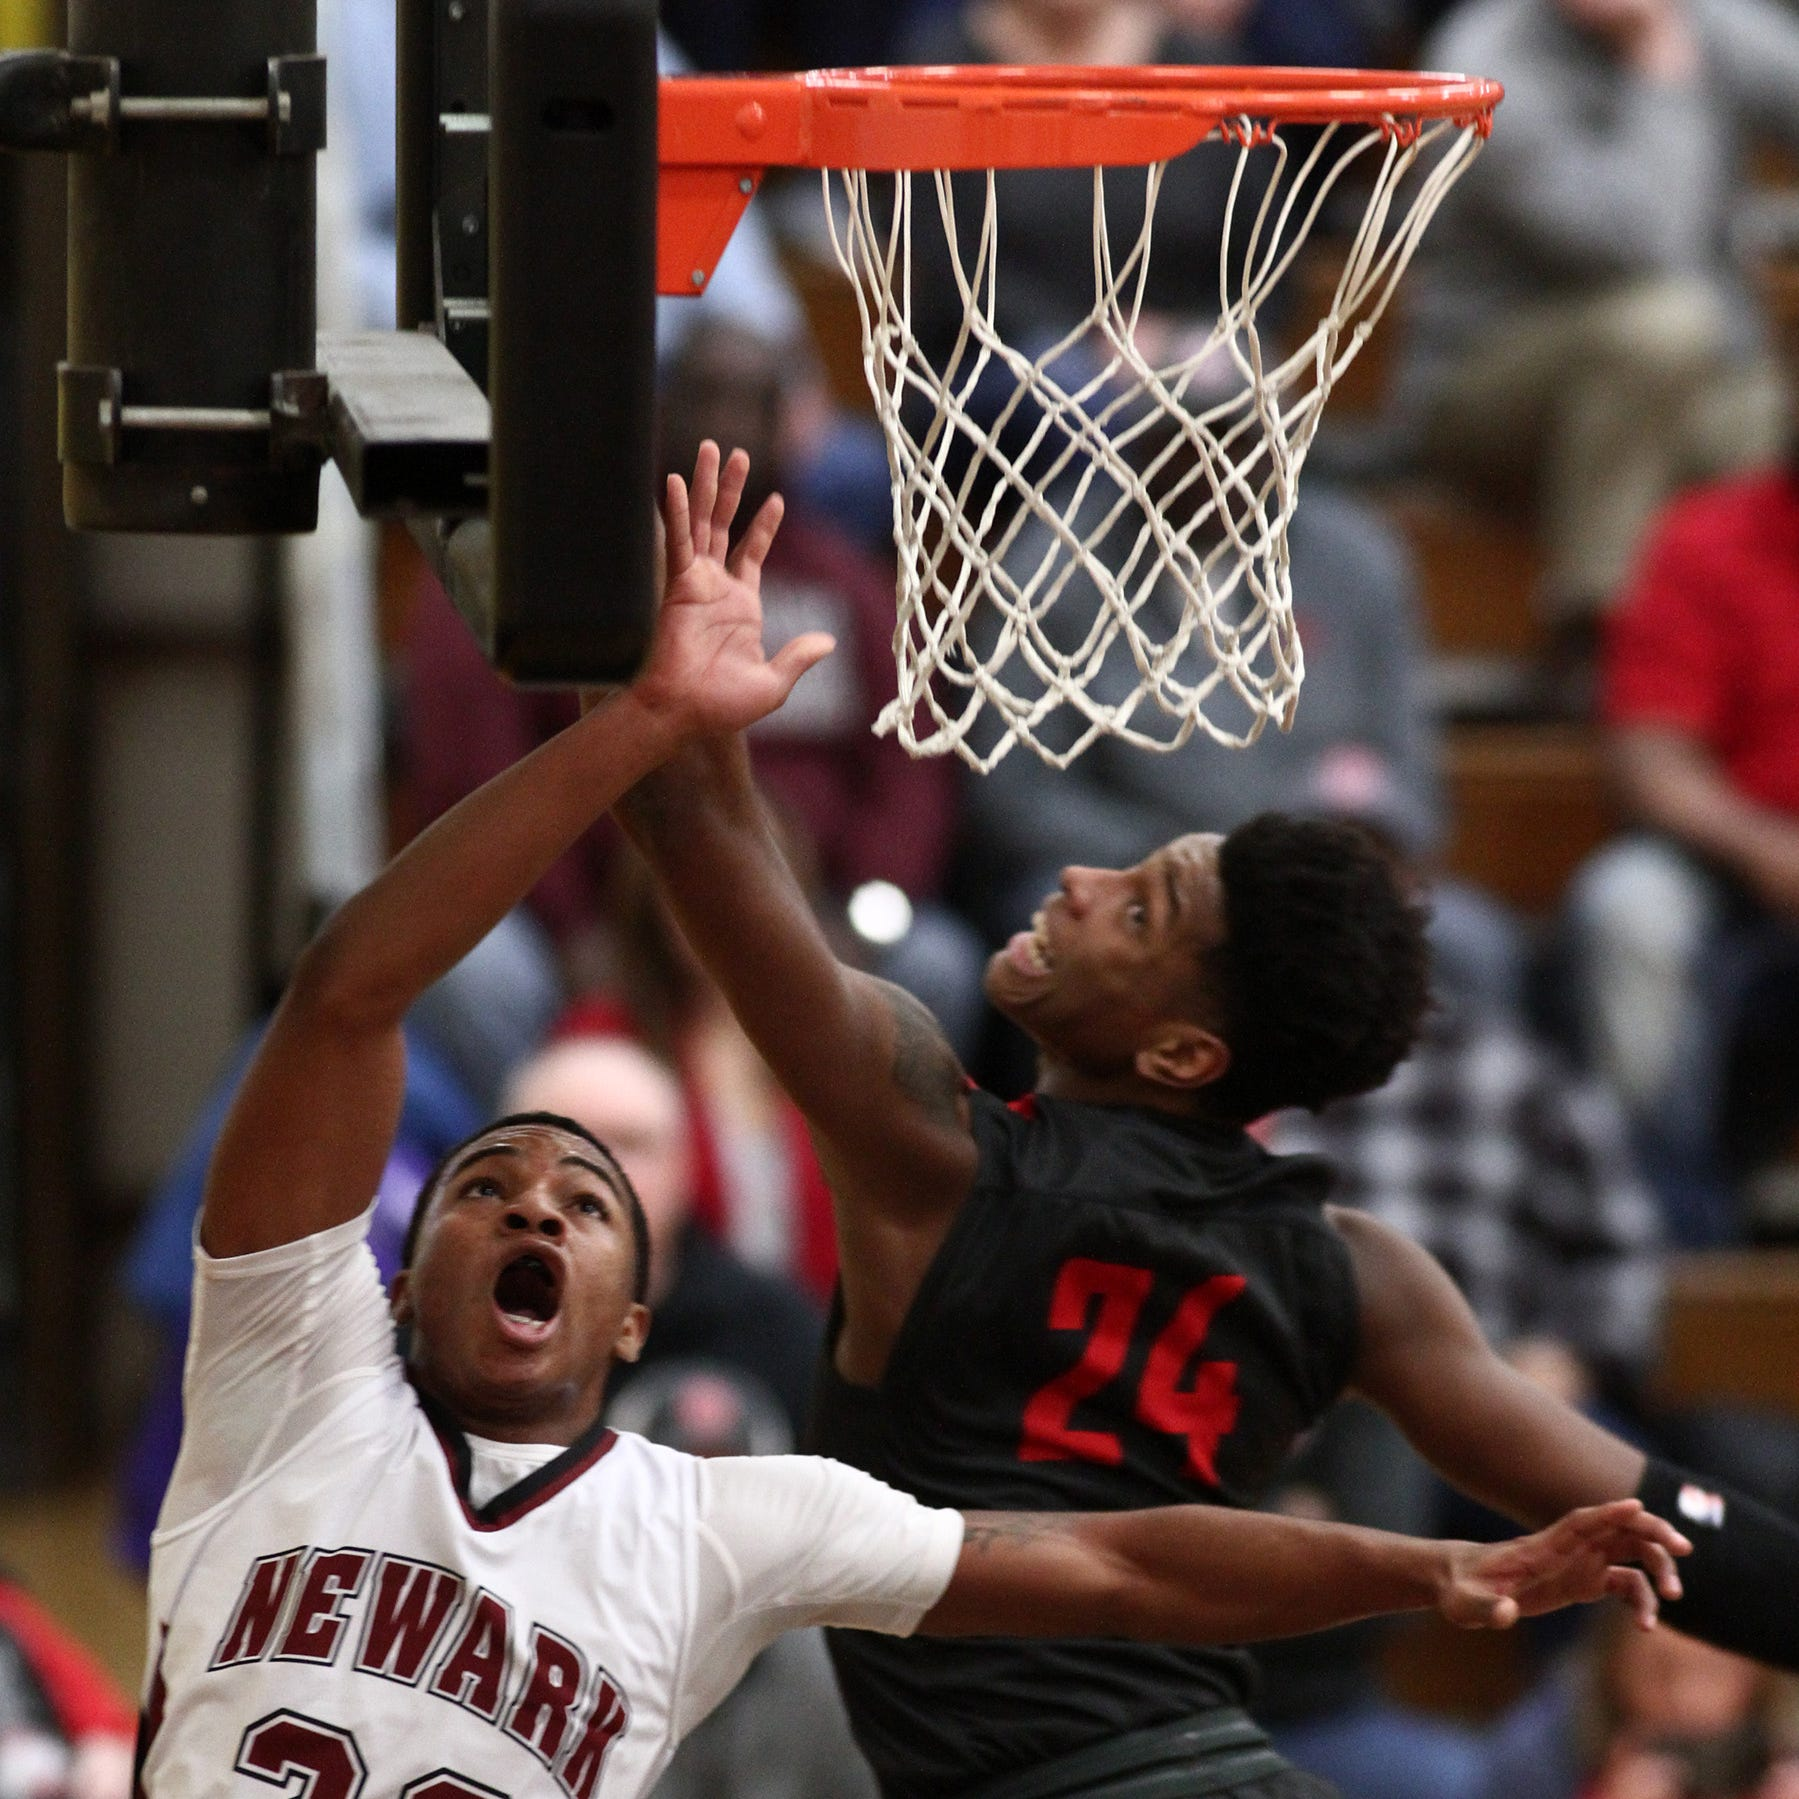 'Grown up' Newark Wildcats don't crack, barge into district finals